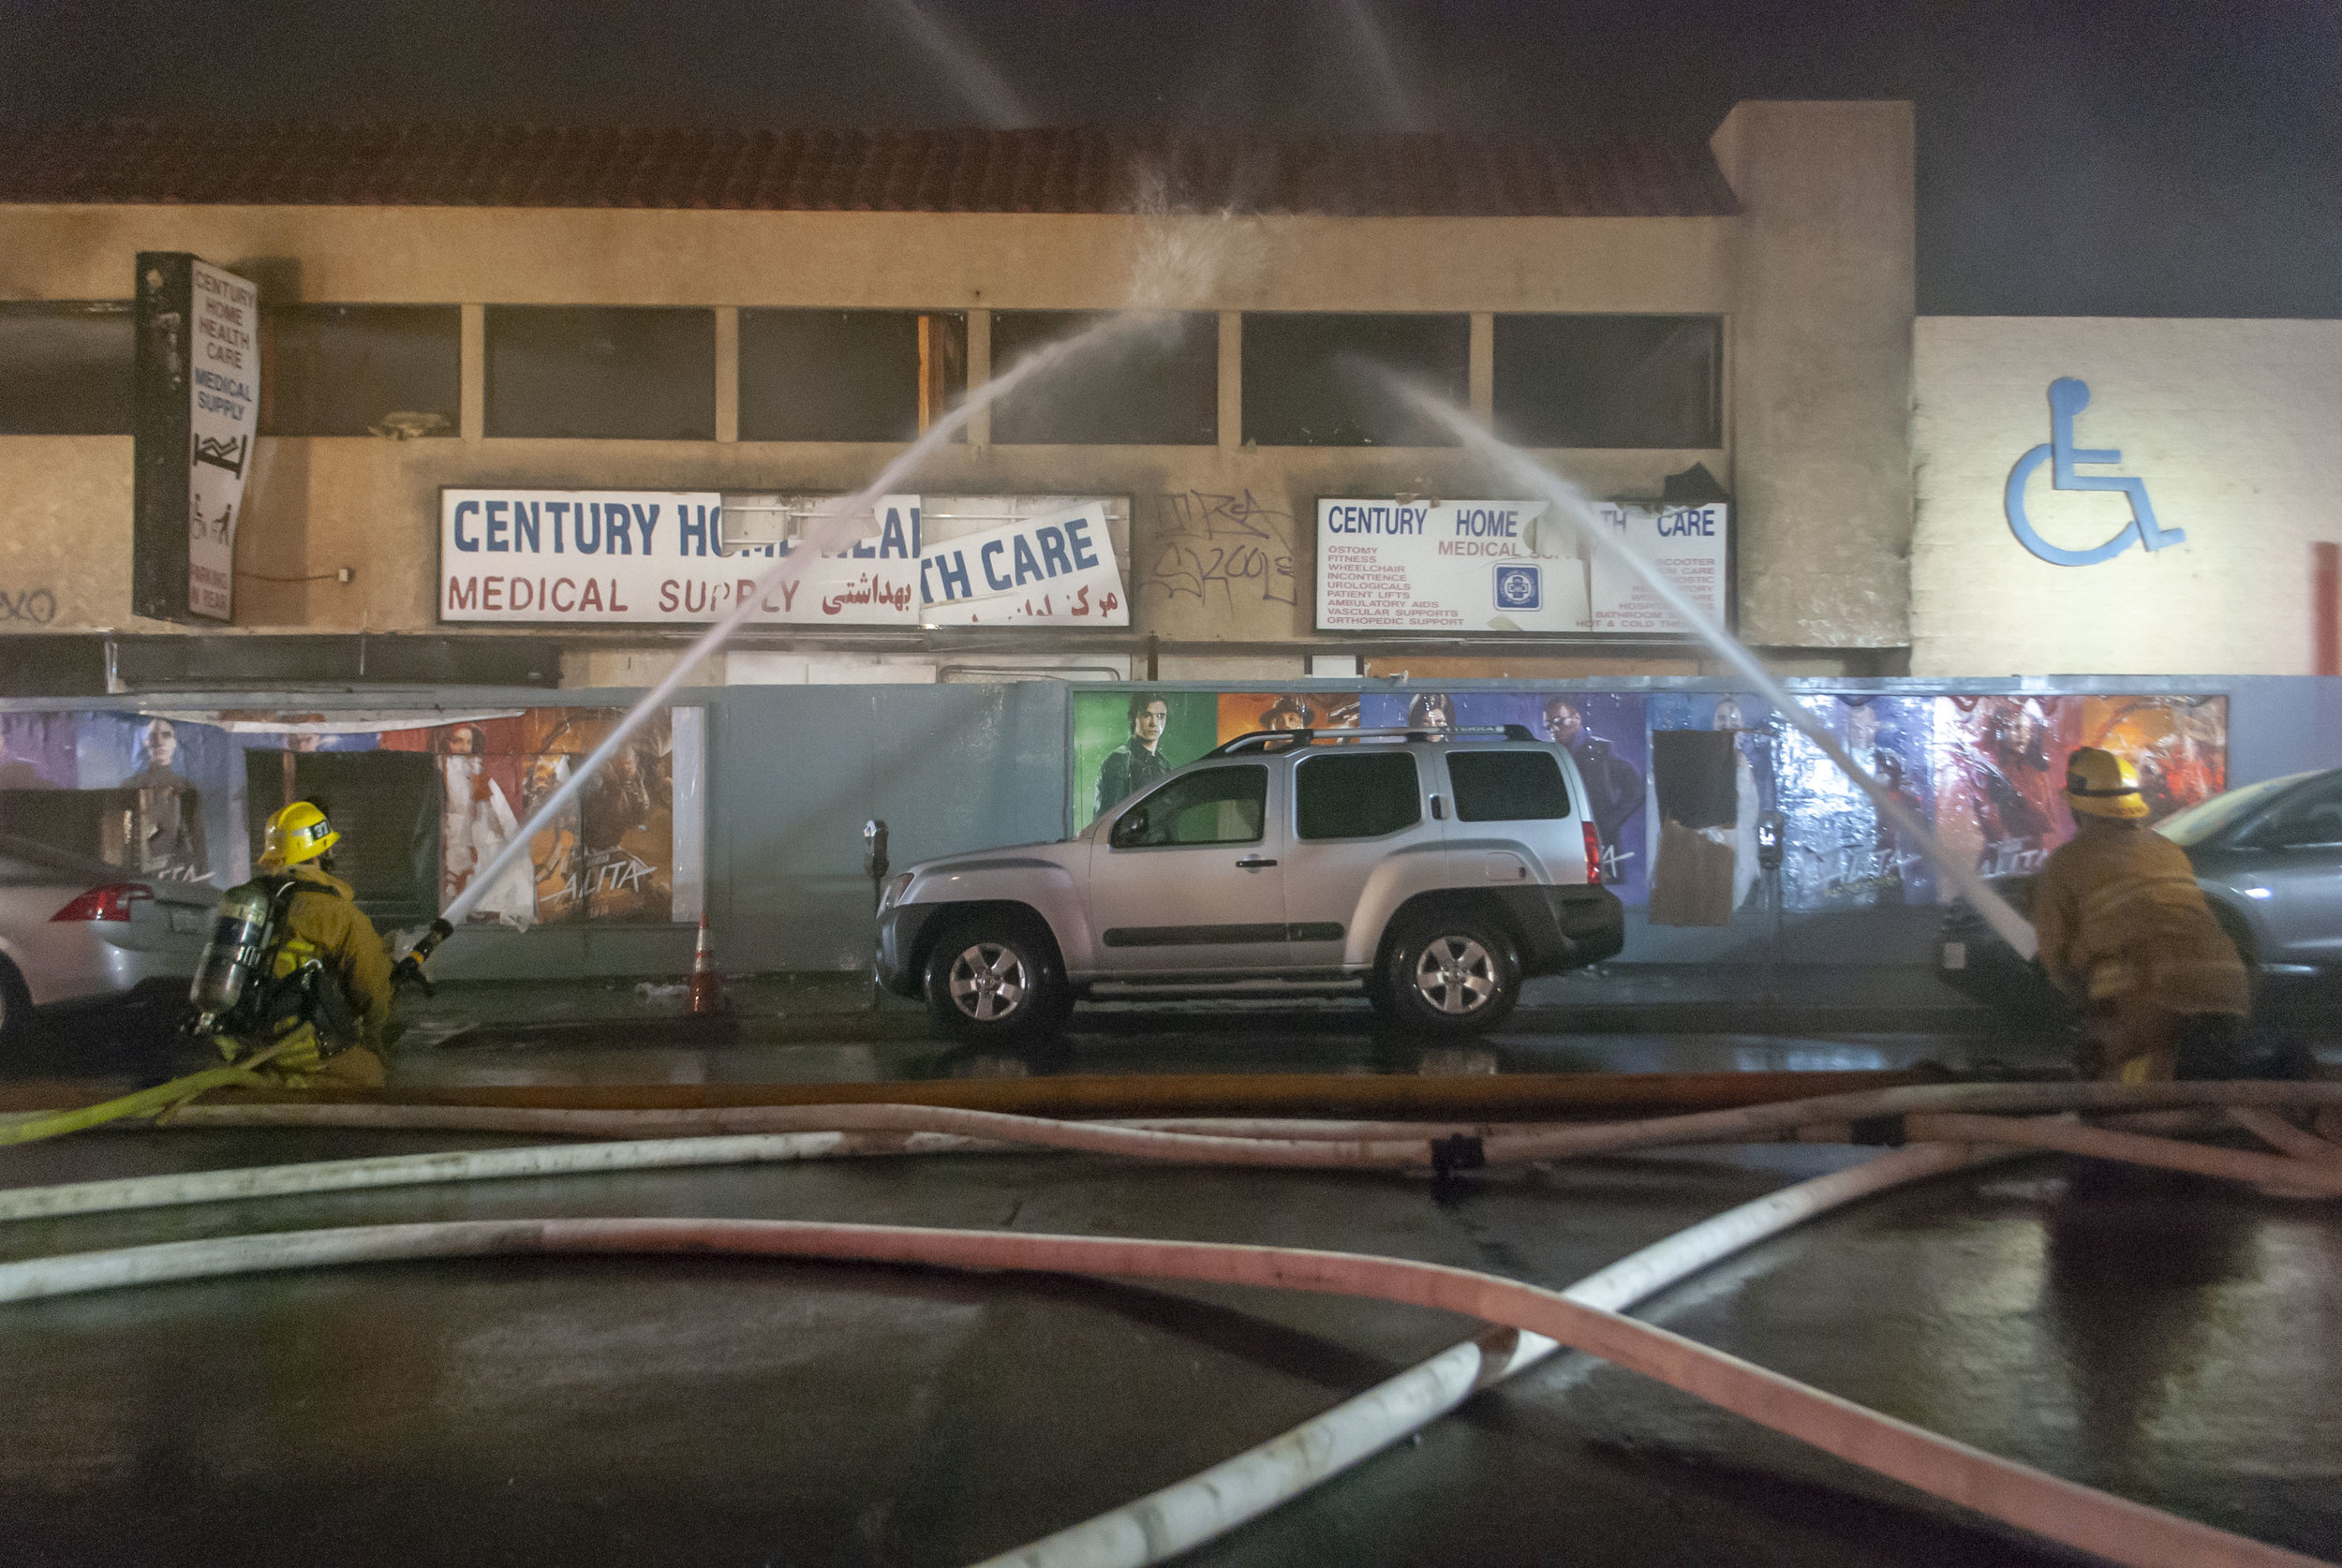 83 Los Angeles Fire Department firefighters combat a two-story commercial building fire on Wednesday, Feb. 27, 2019, at the 1500 block of Westgate Ave.  in Los Angeles, California. Numerous fire companies spent two hours and twenty-four minutes to extinguish most of the fire. According to the Los Angeles Fire Department Alert, the fire's cause remains under investigation. (Andrew Narváez/The Corsair)